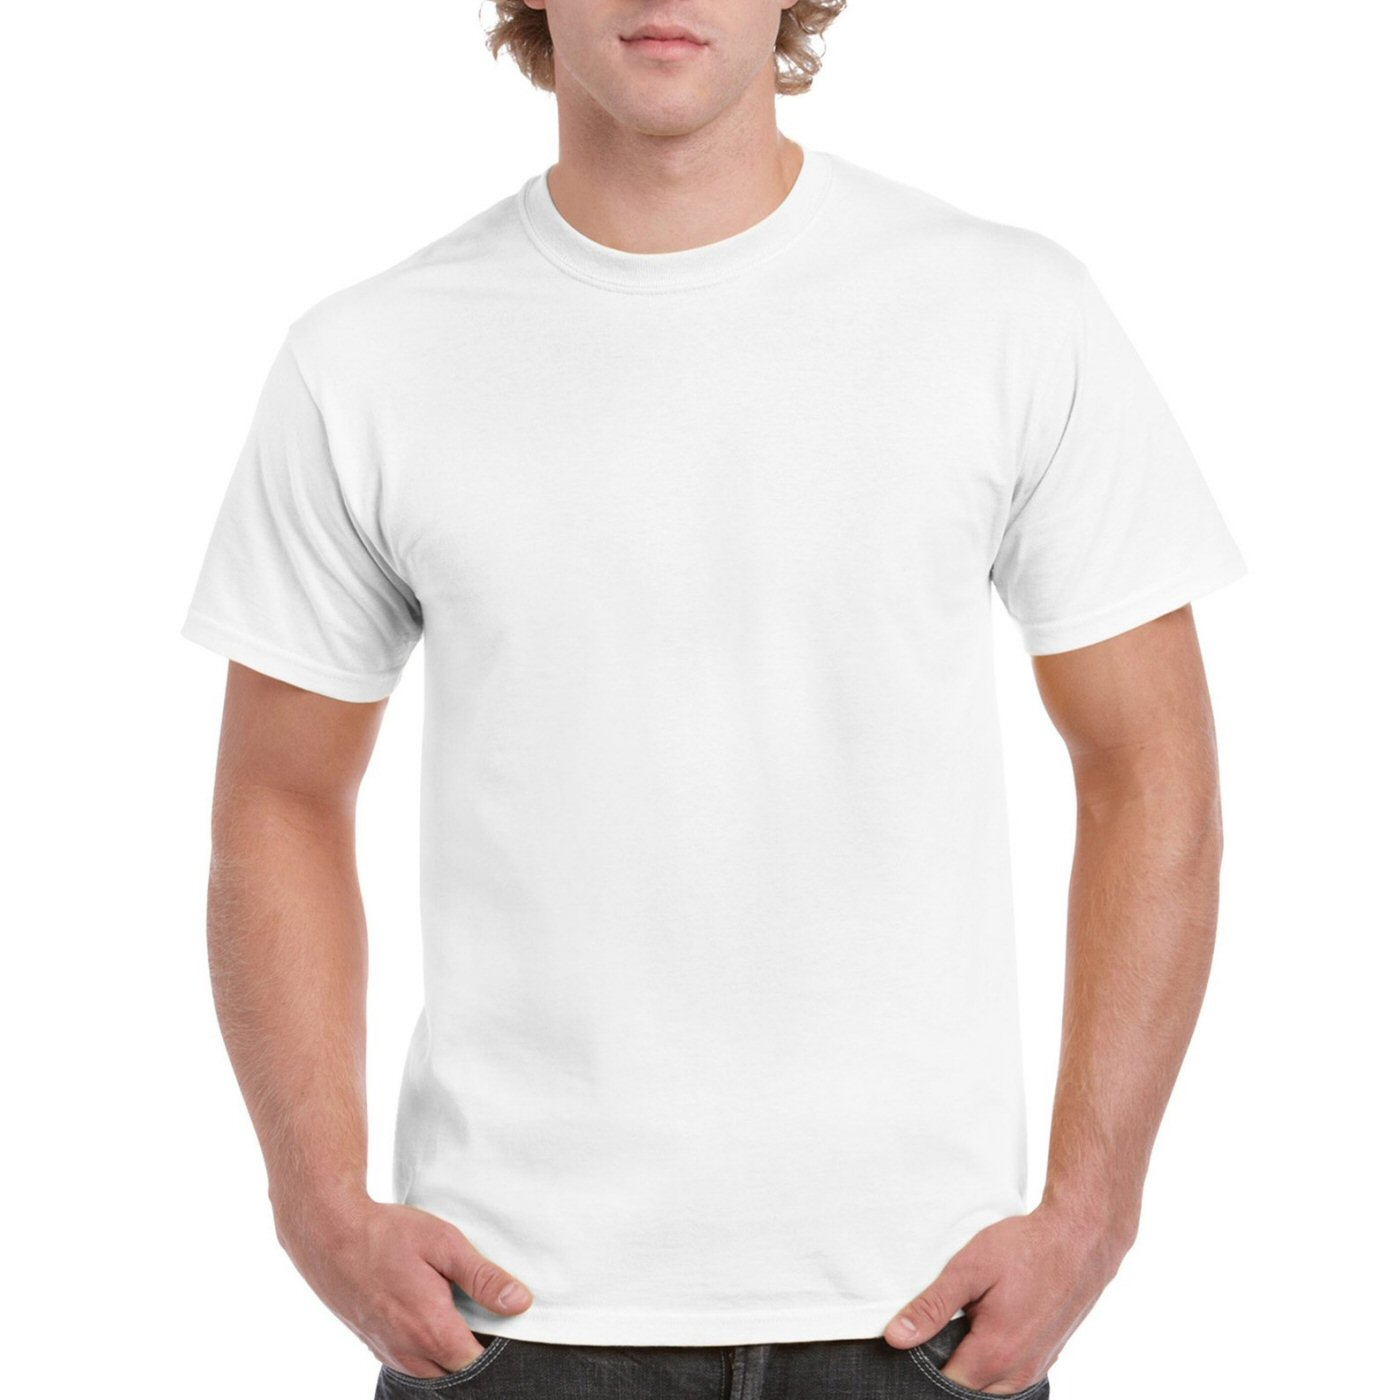 buy white plain blank round neck t shirts for men online india best reviews prices. Black Bedroom Furniture Sets. Home Design Ideas